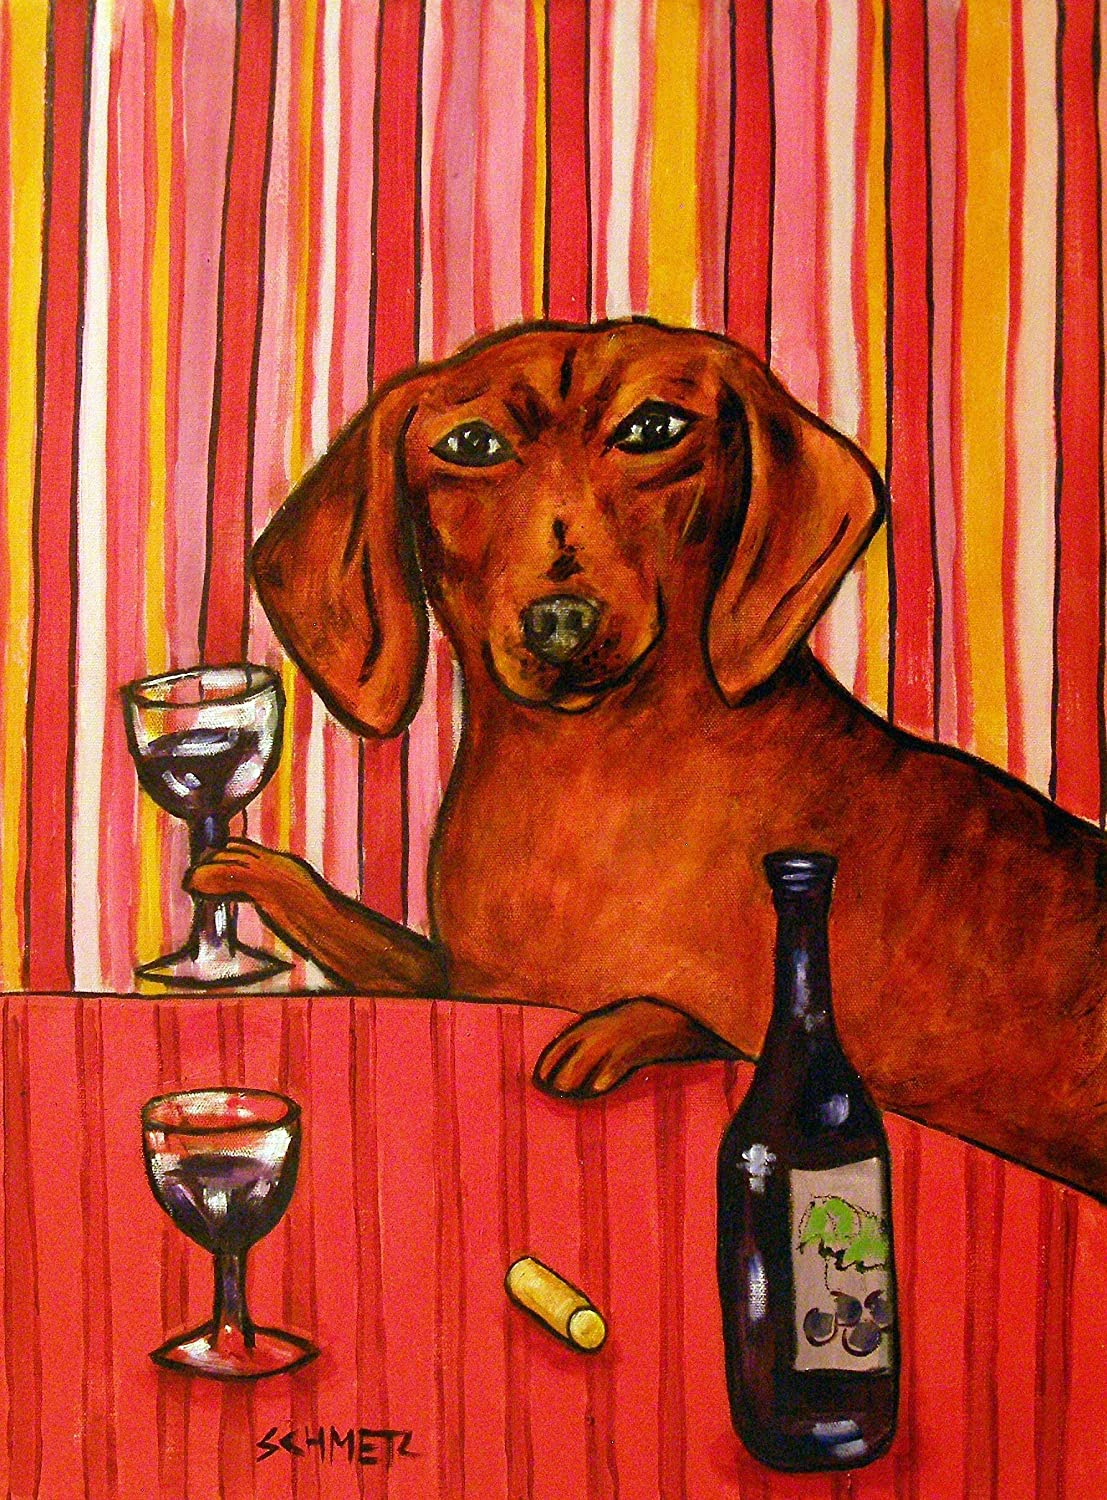 Dachshund Complete Free Shipping at the Wine Bar Nippon regular agency Print art Dog Gift